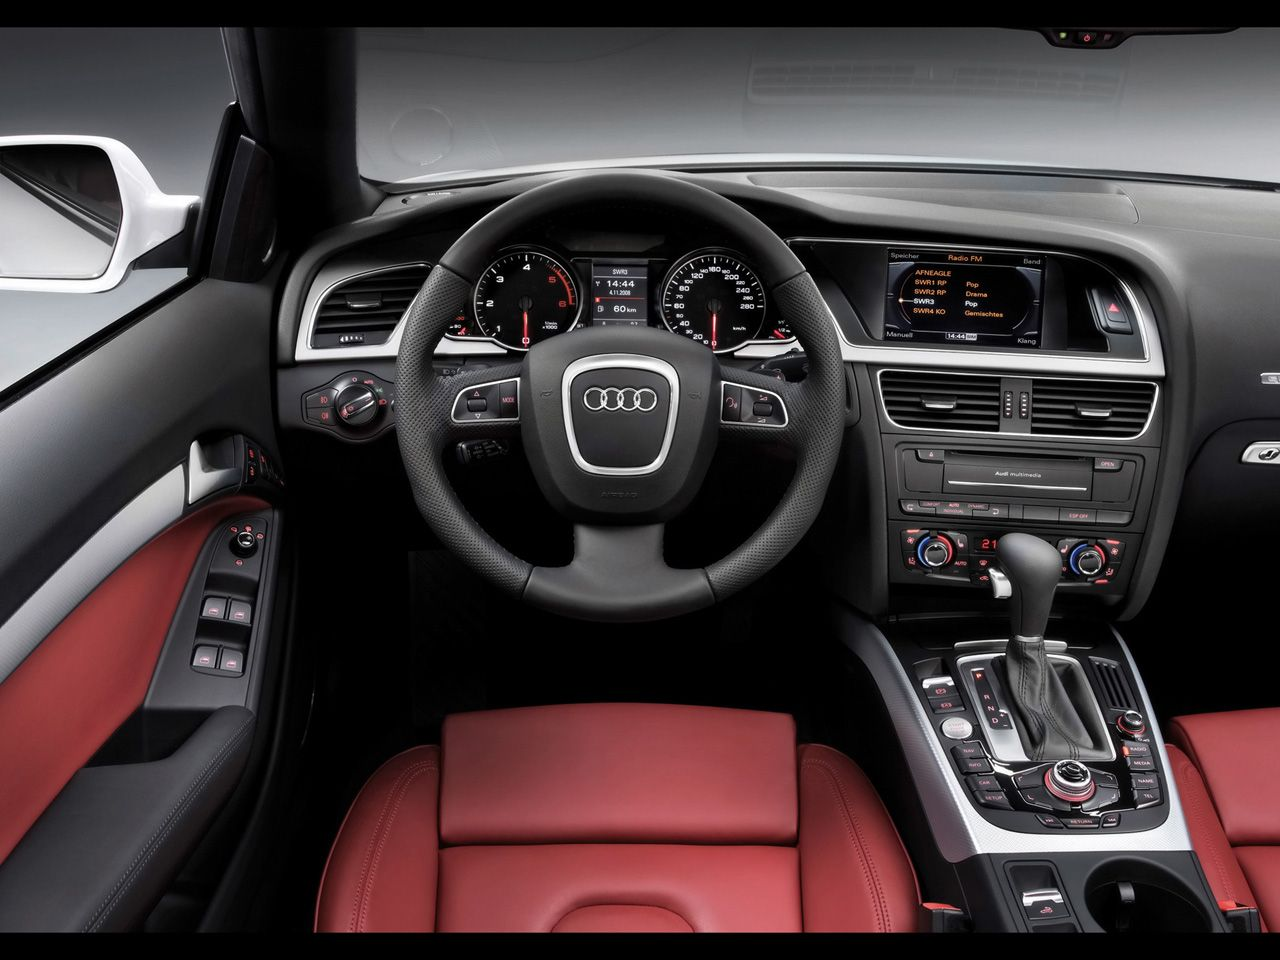 Audi A5 Interior Hd Wallpapers Ultra Hd Car Wallpapers Audi S5 Audi A5 Interior Audi A5